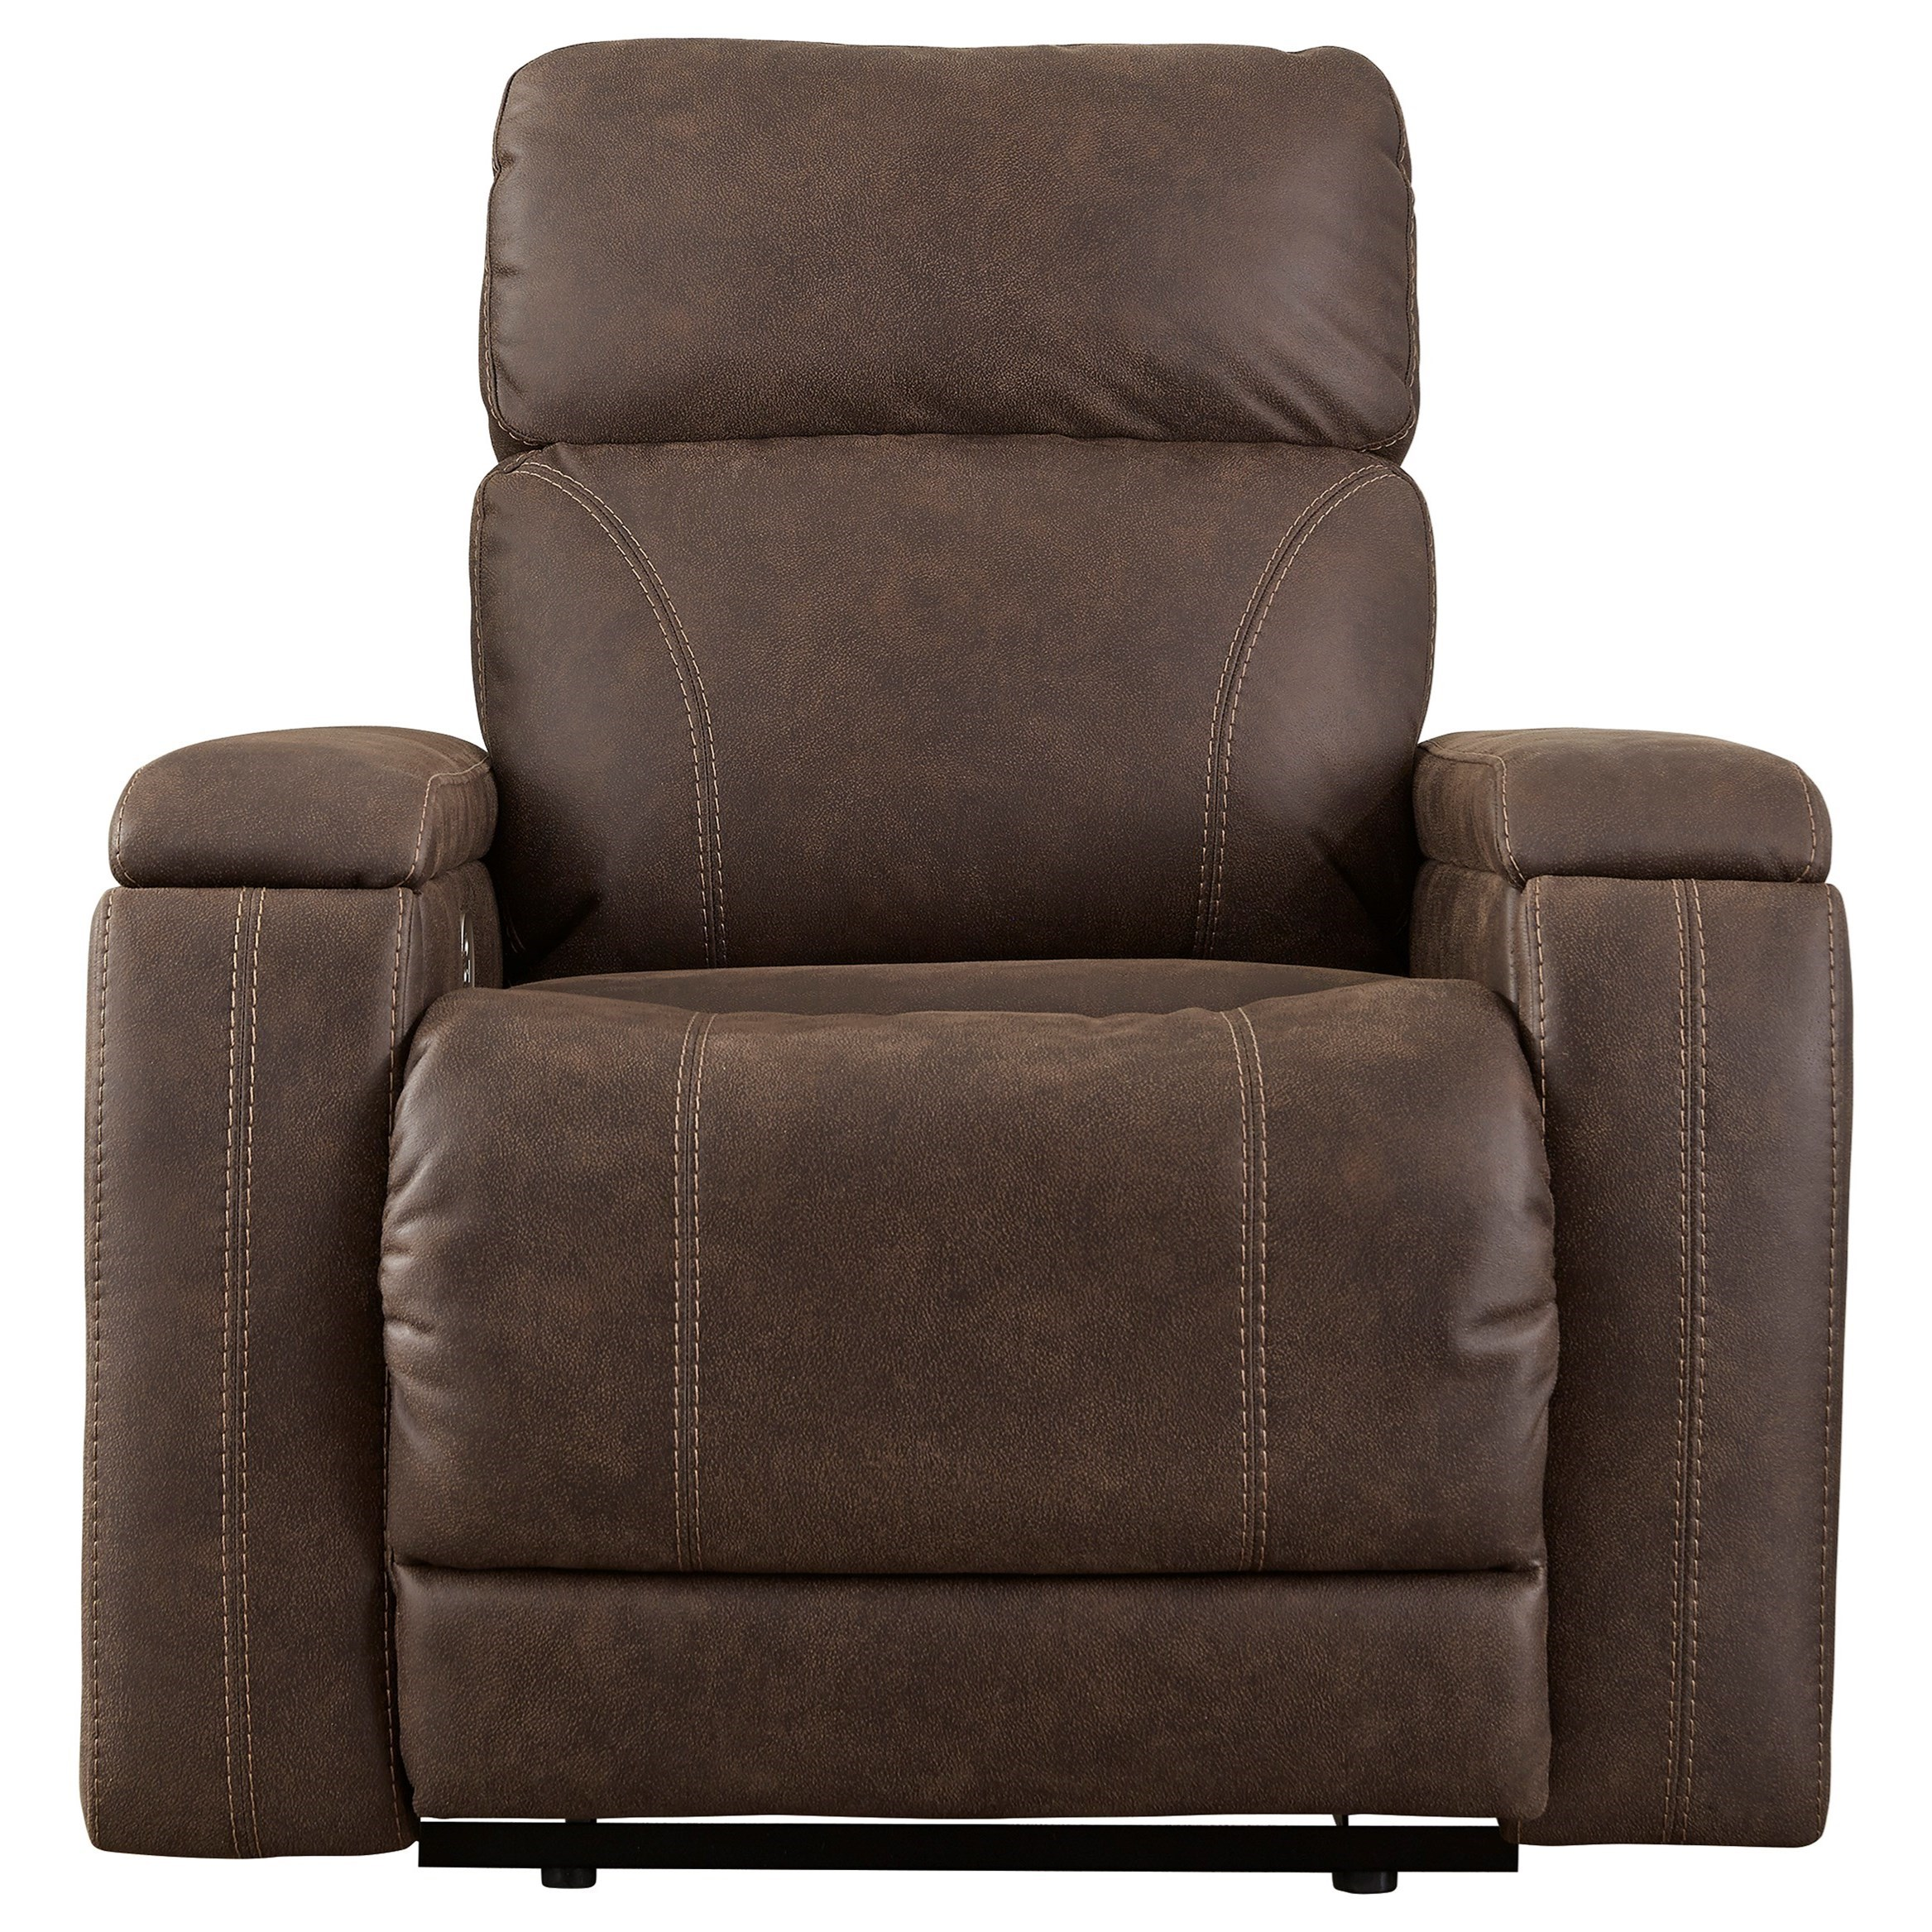 Rowlett Power Recliner with Adjustable Headrest by Signature Design by Ashley at Northeast Factory Direct